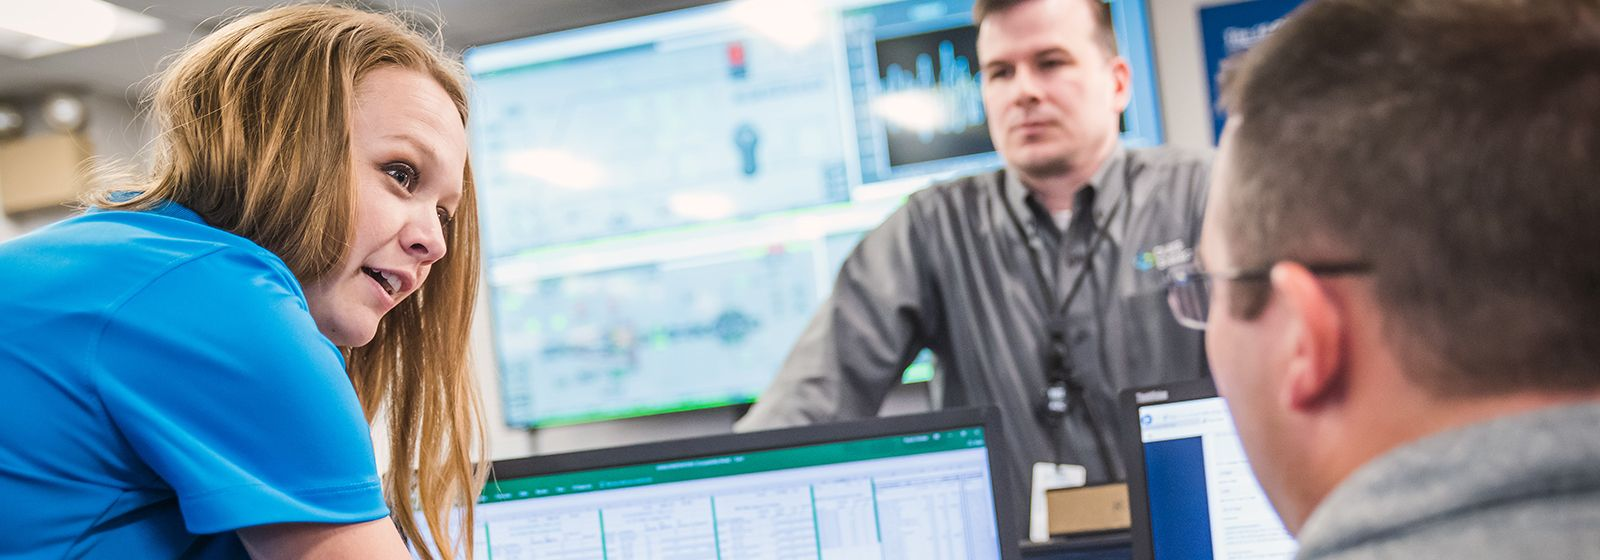 Coordination is key at nuclear plant